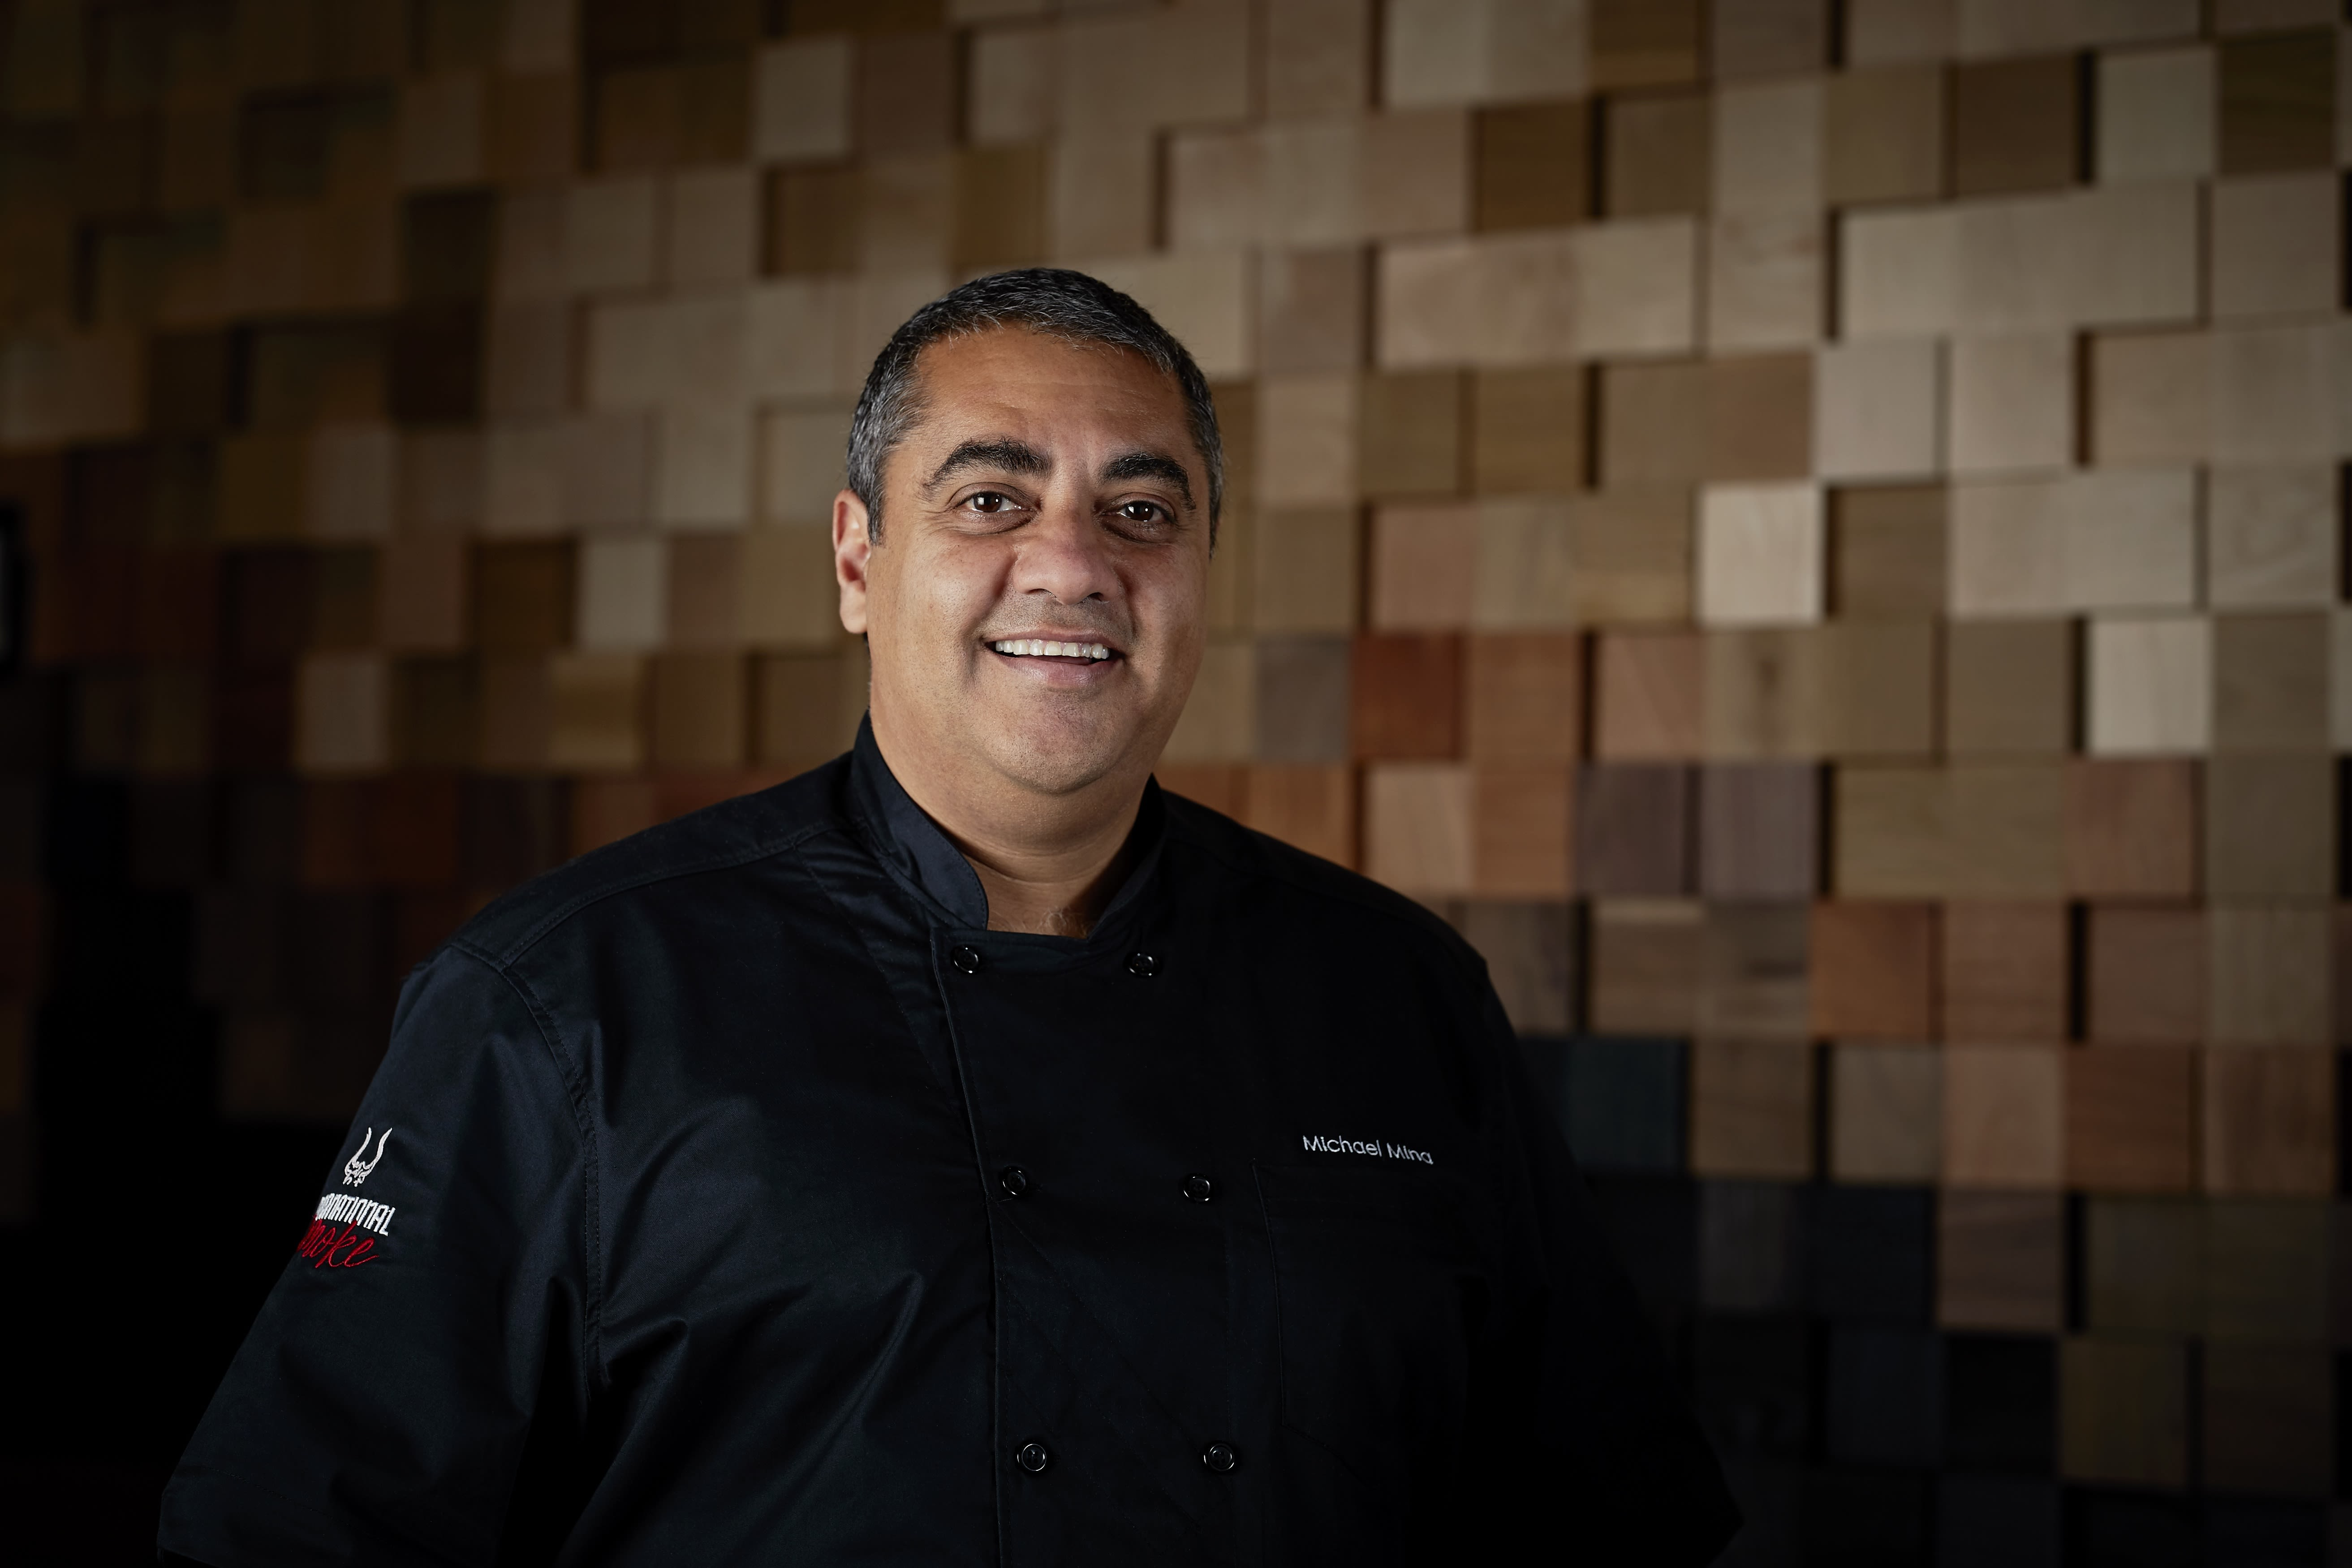 Chef michael mina portrait podm7k